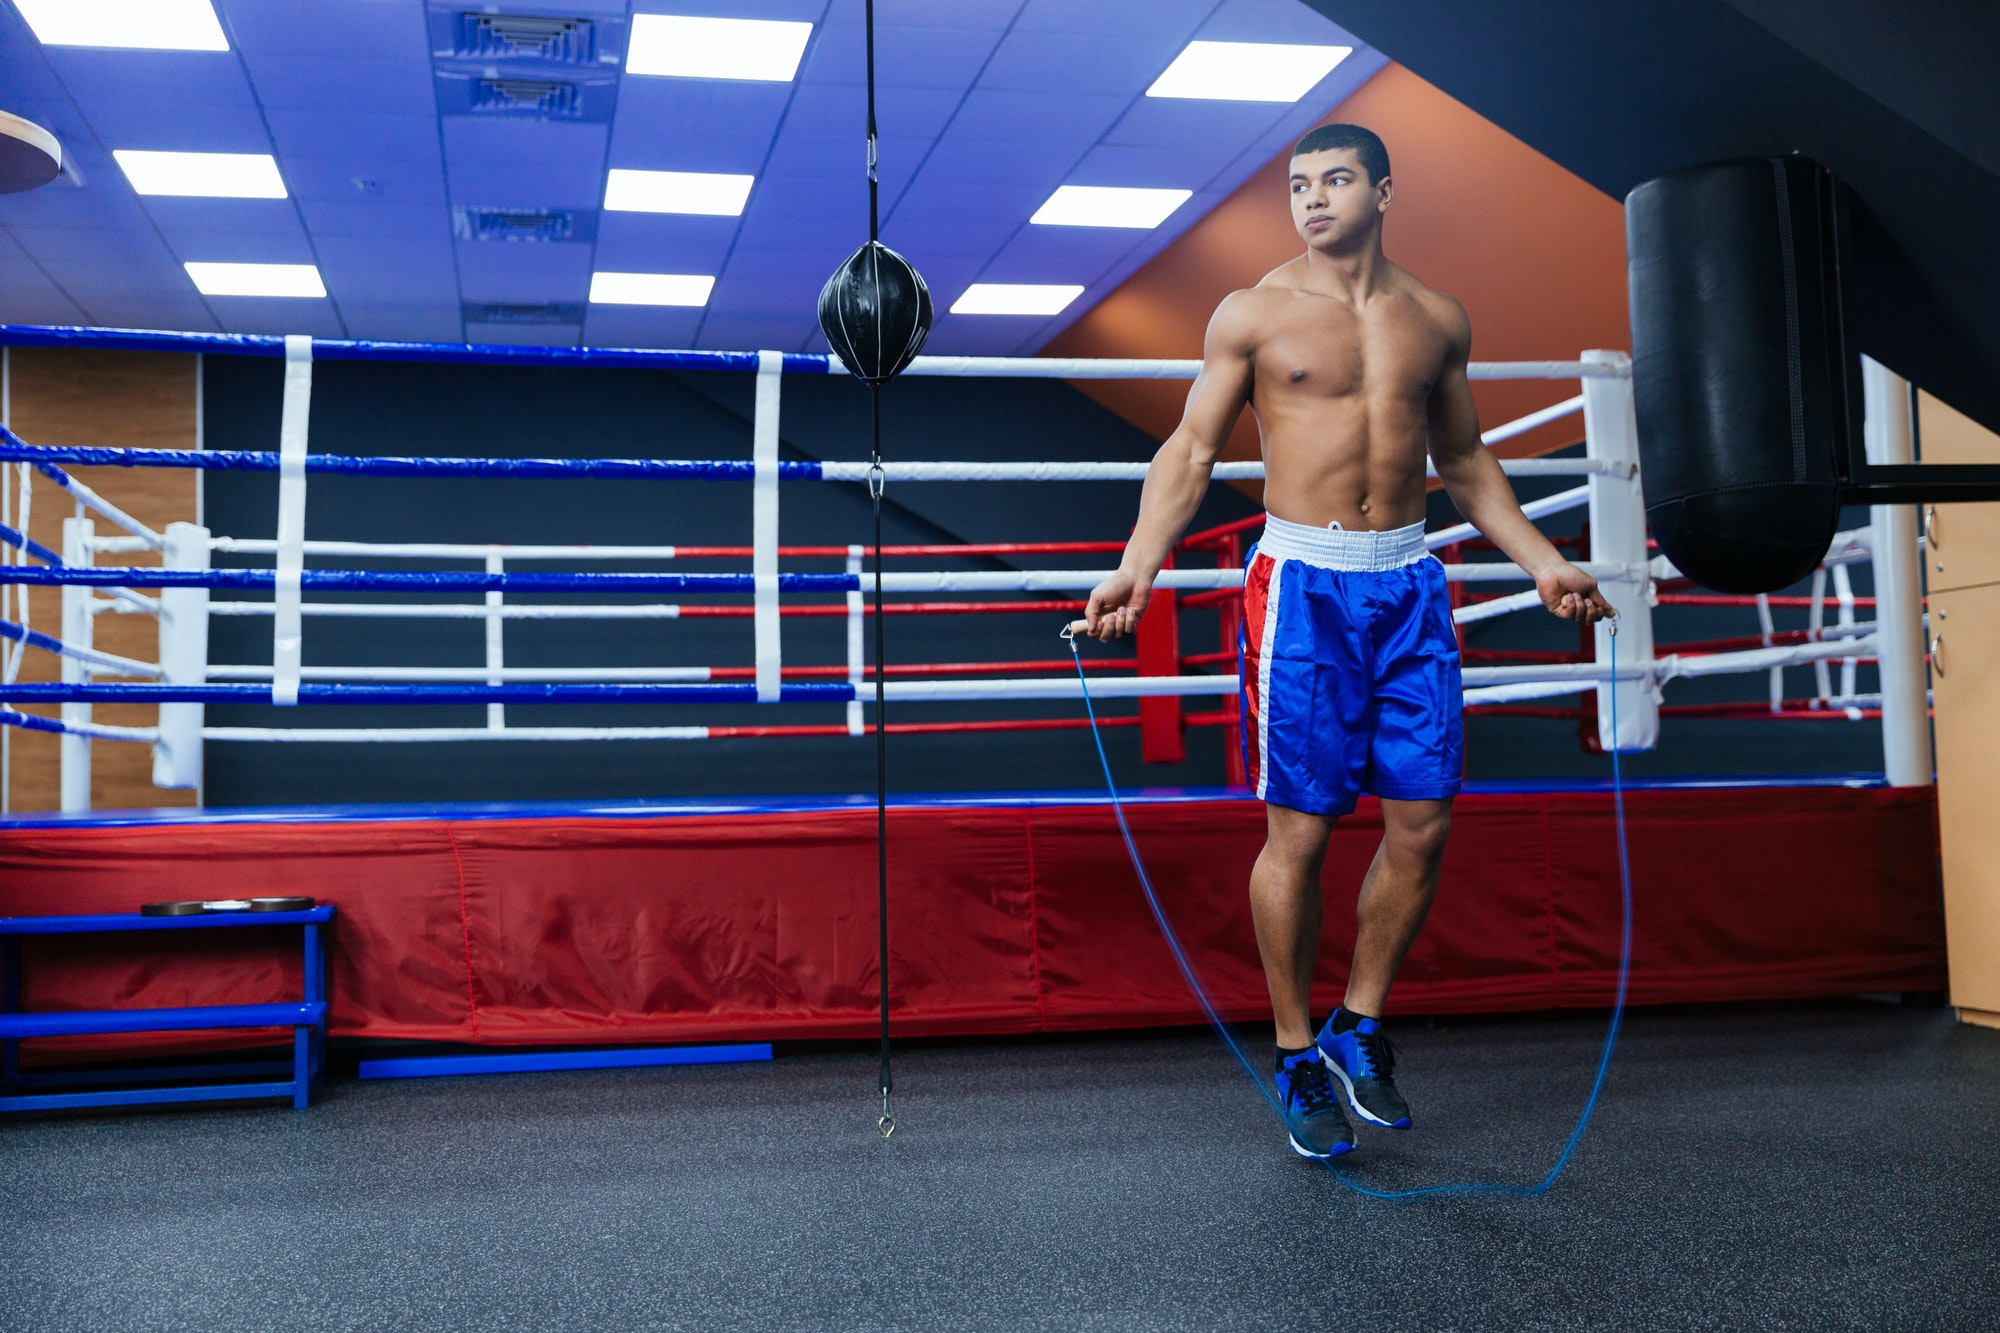 Boxer jumping with skipping rope